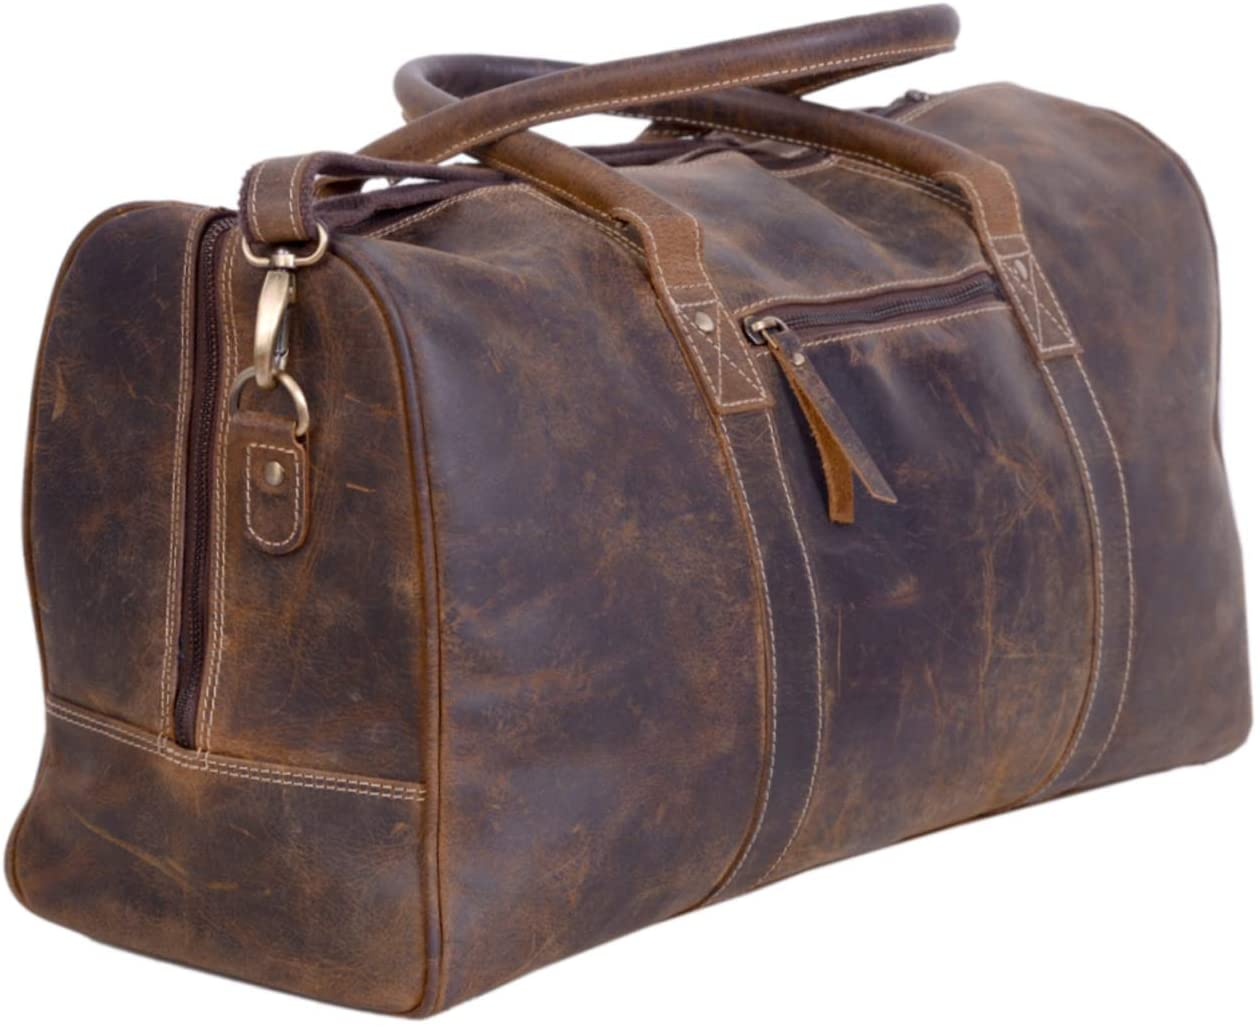 KomalC Leather Travel Duffel Bag